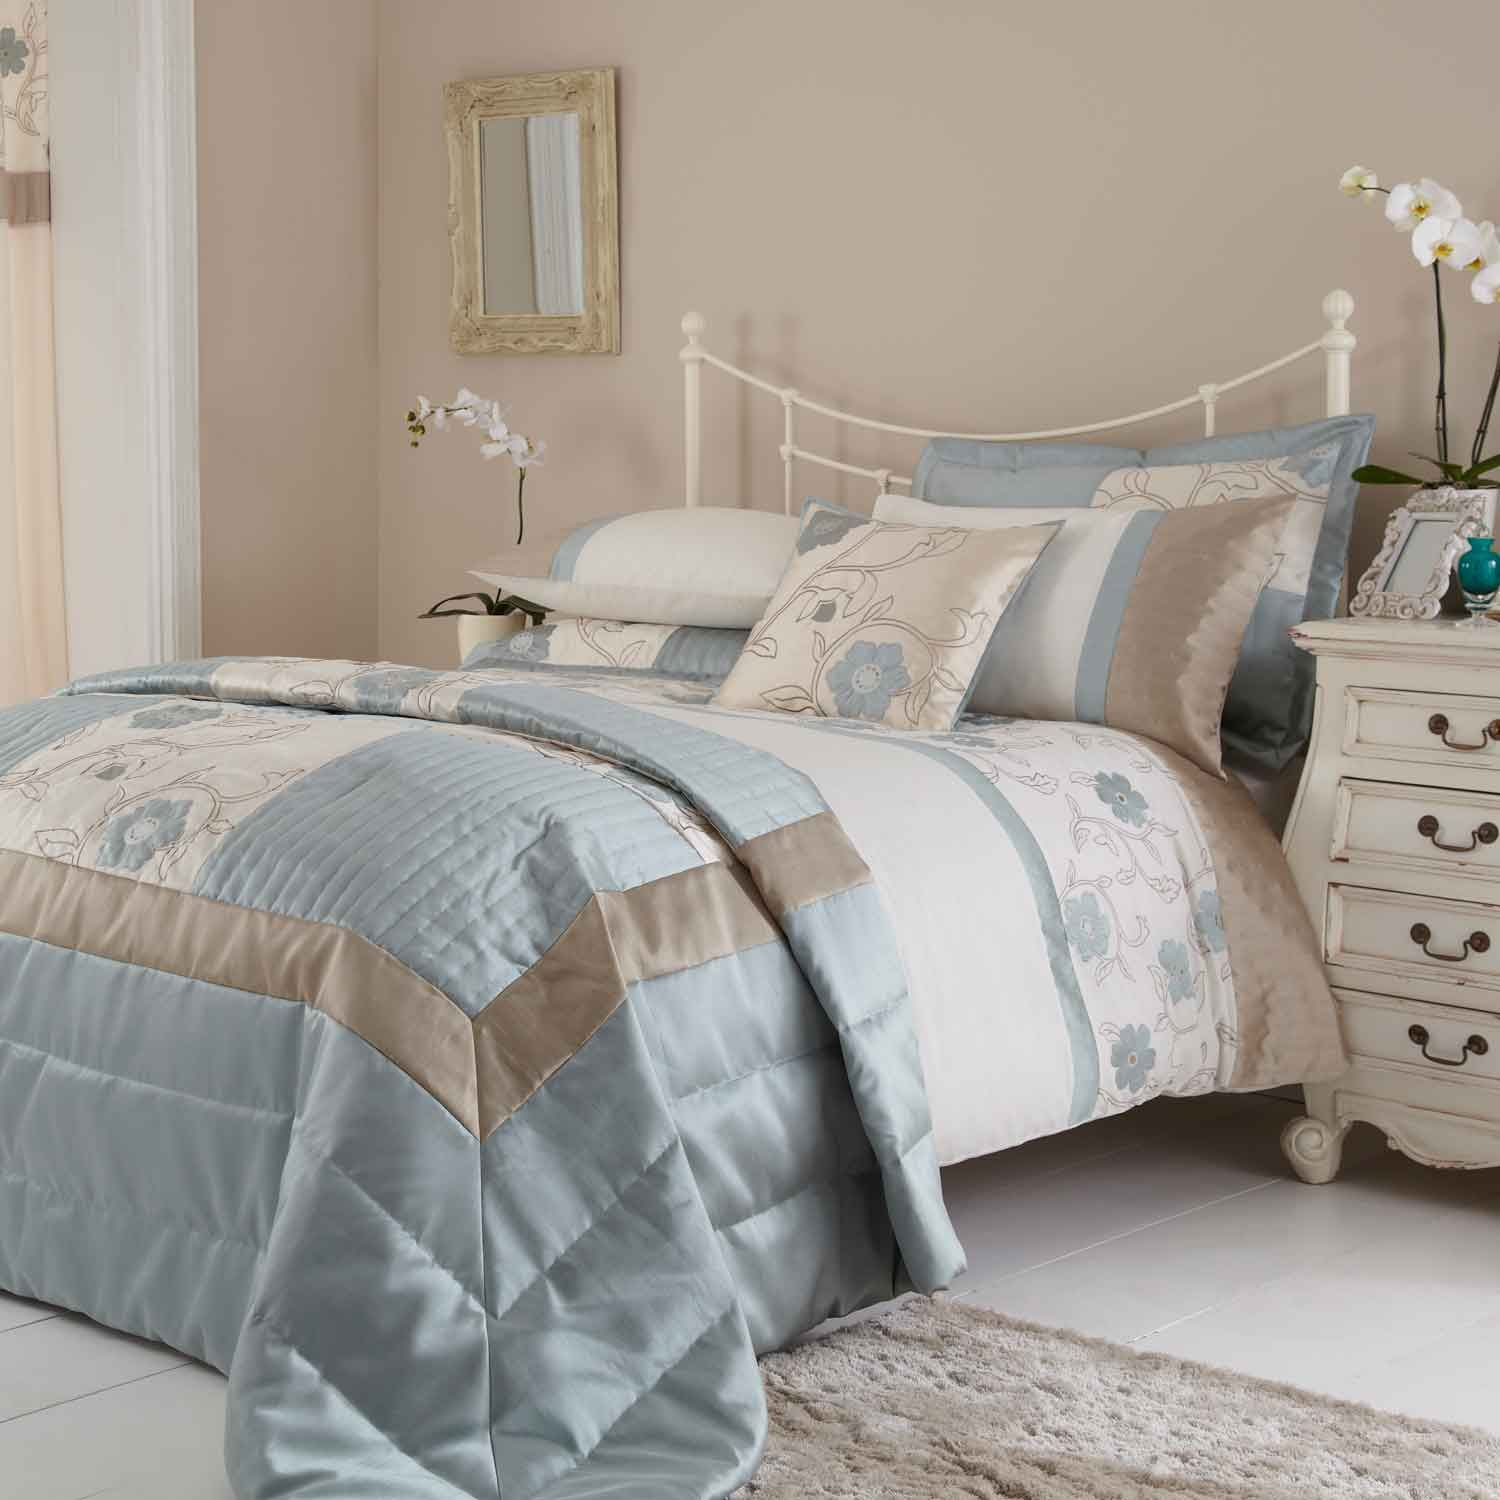 Duck Egg Blue And Brown Bedding For Couple Bedroom Decorating Ideas